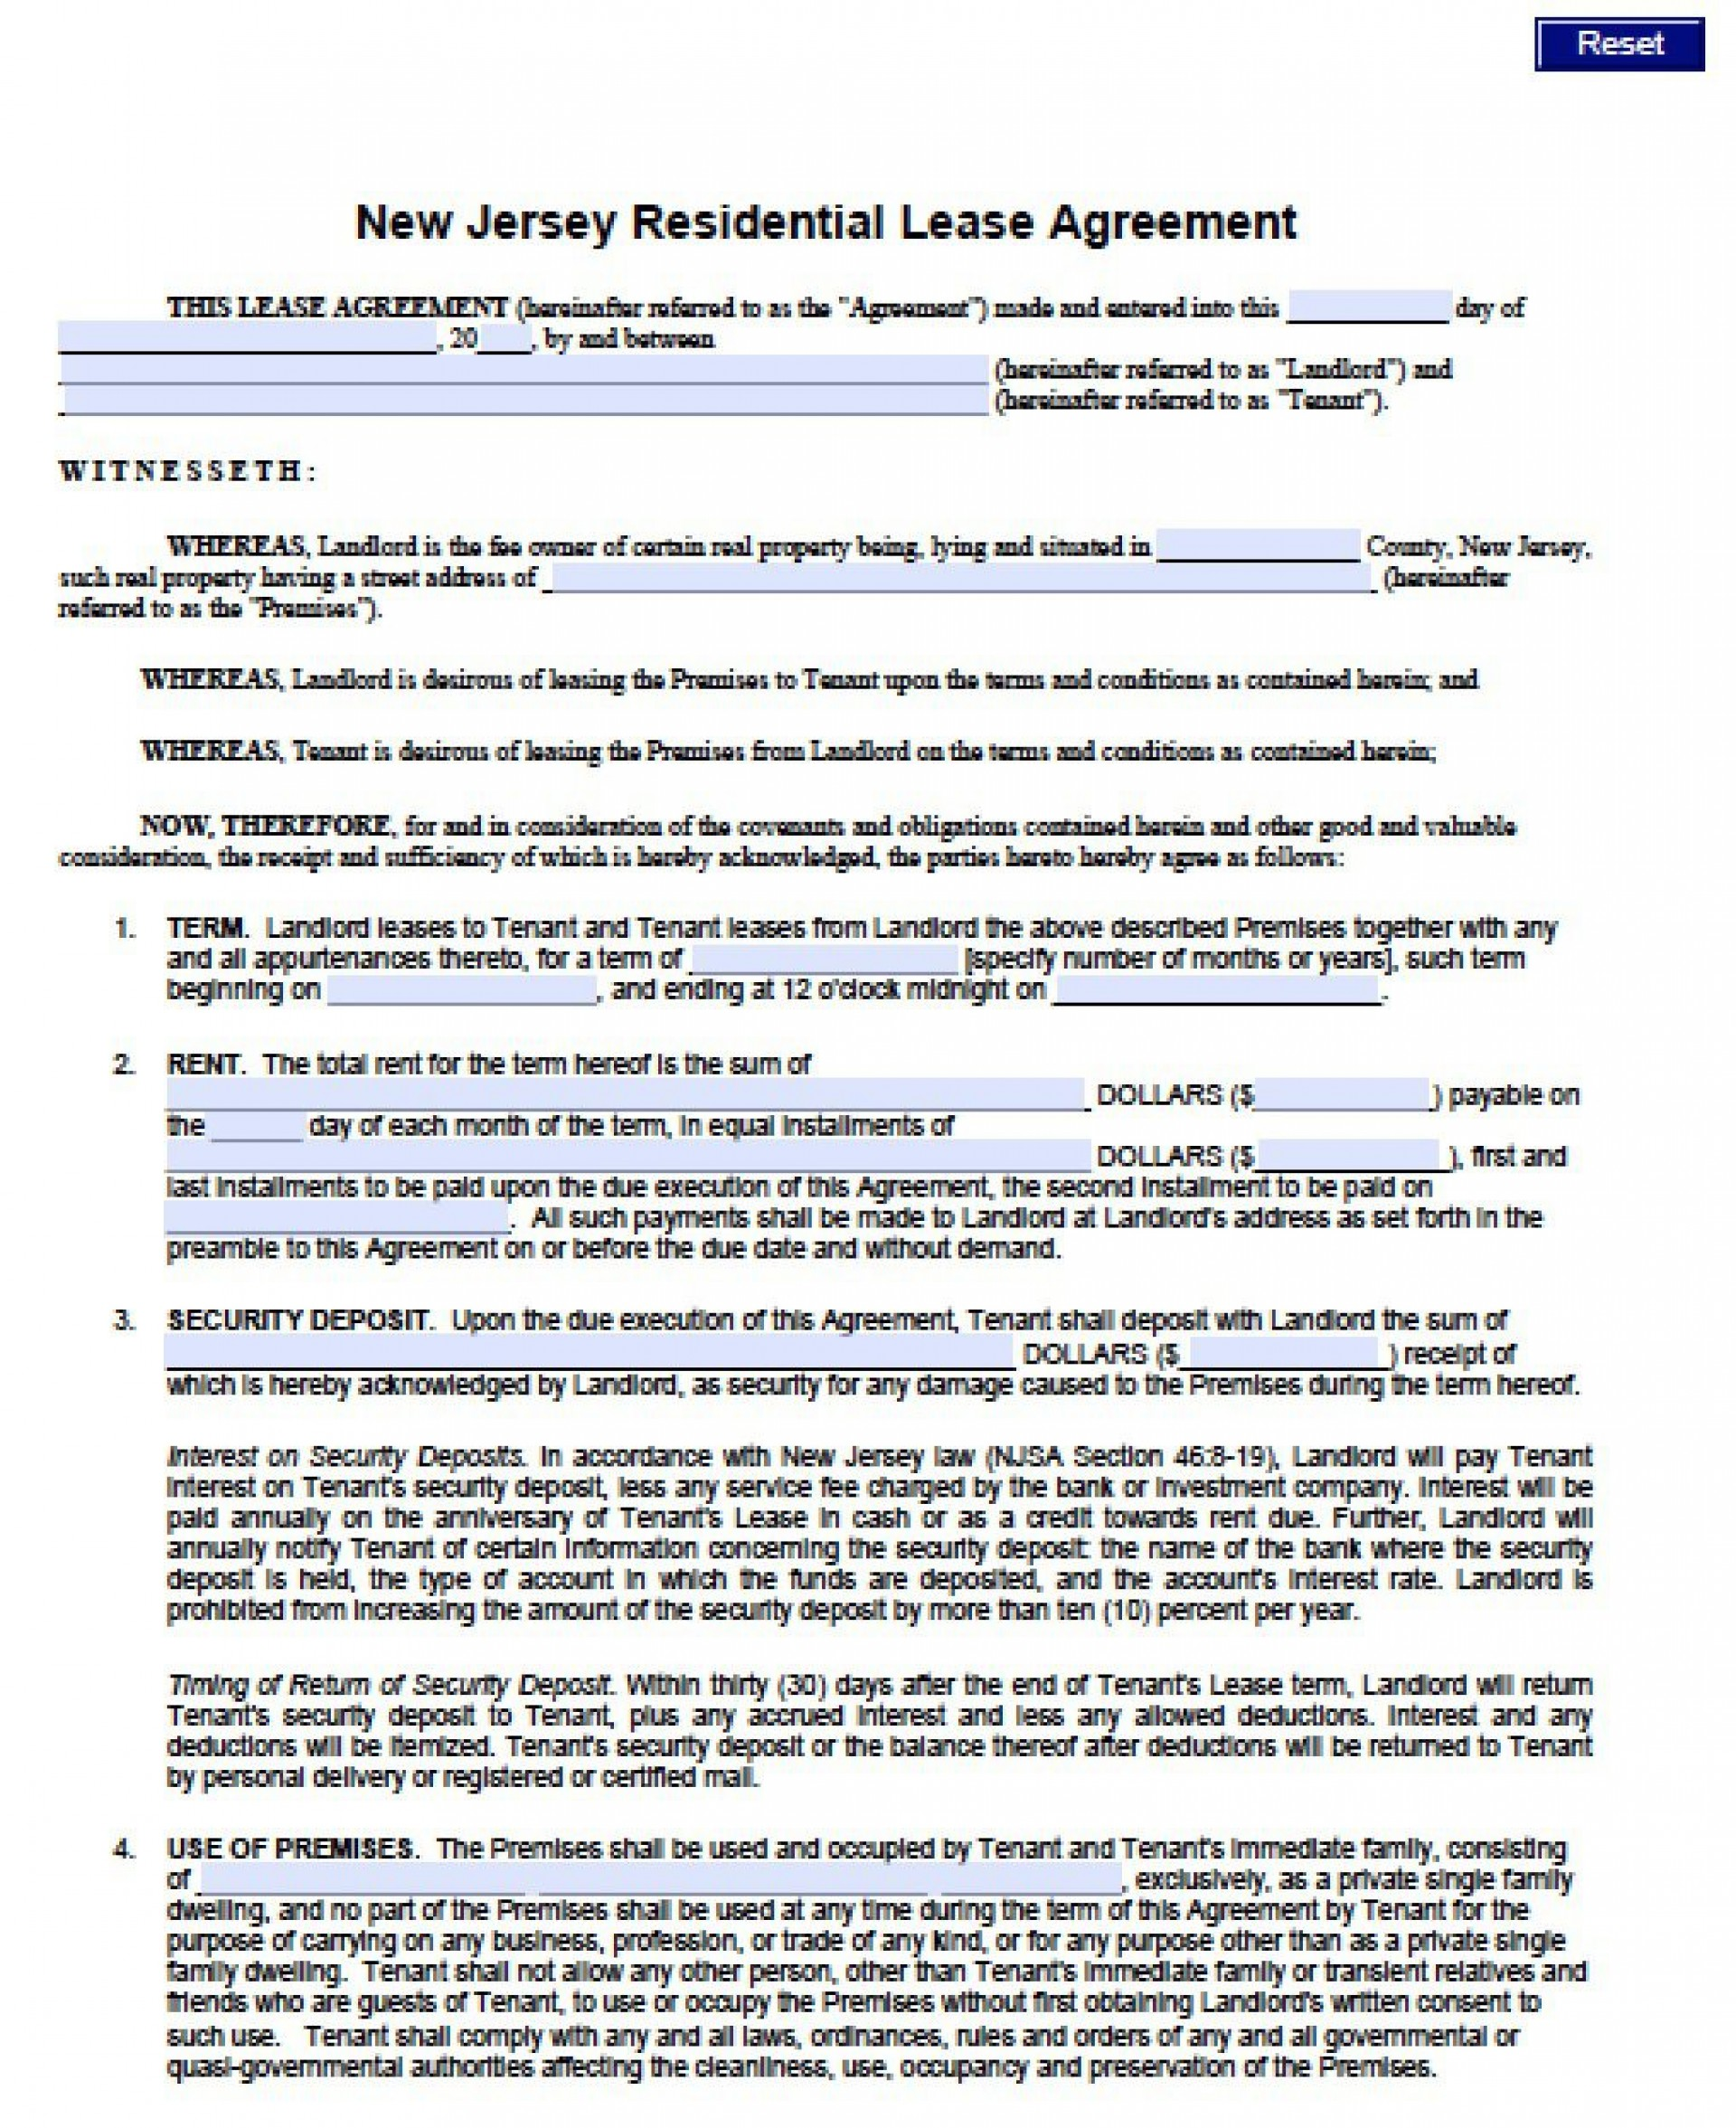 007 Fearsome Generic Rental Lease Agreement Nj Concept  Sample1920